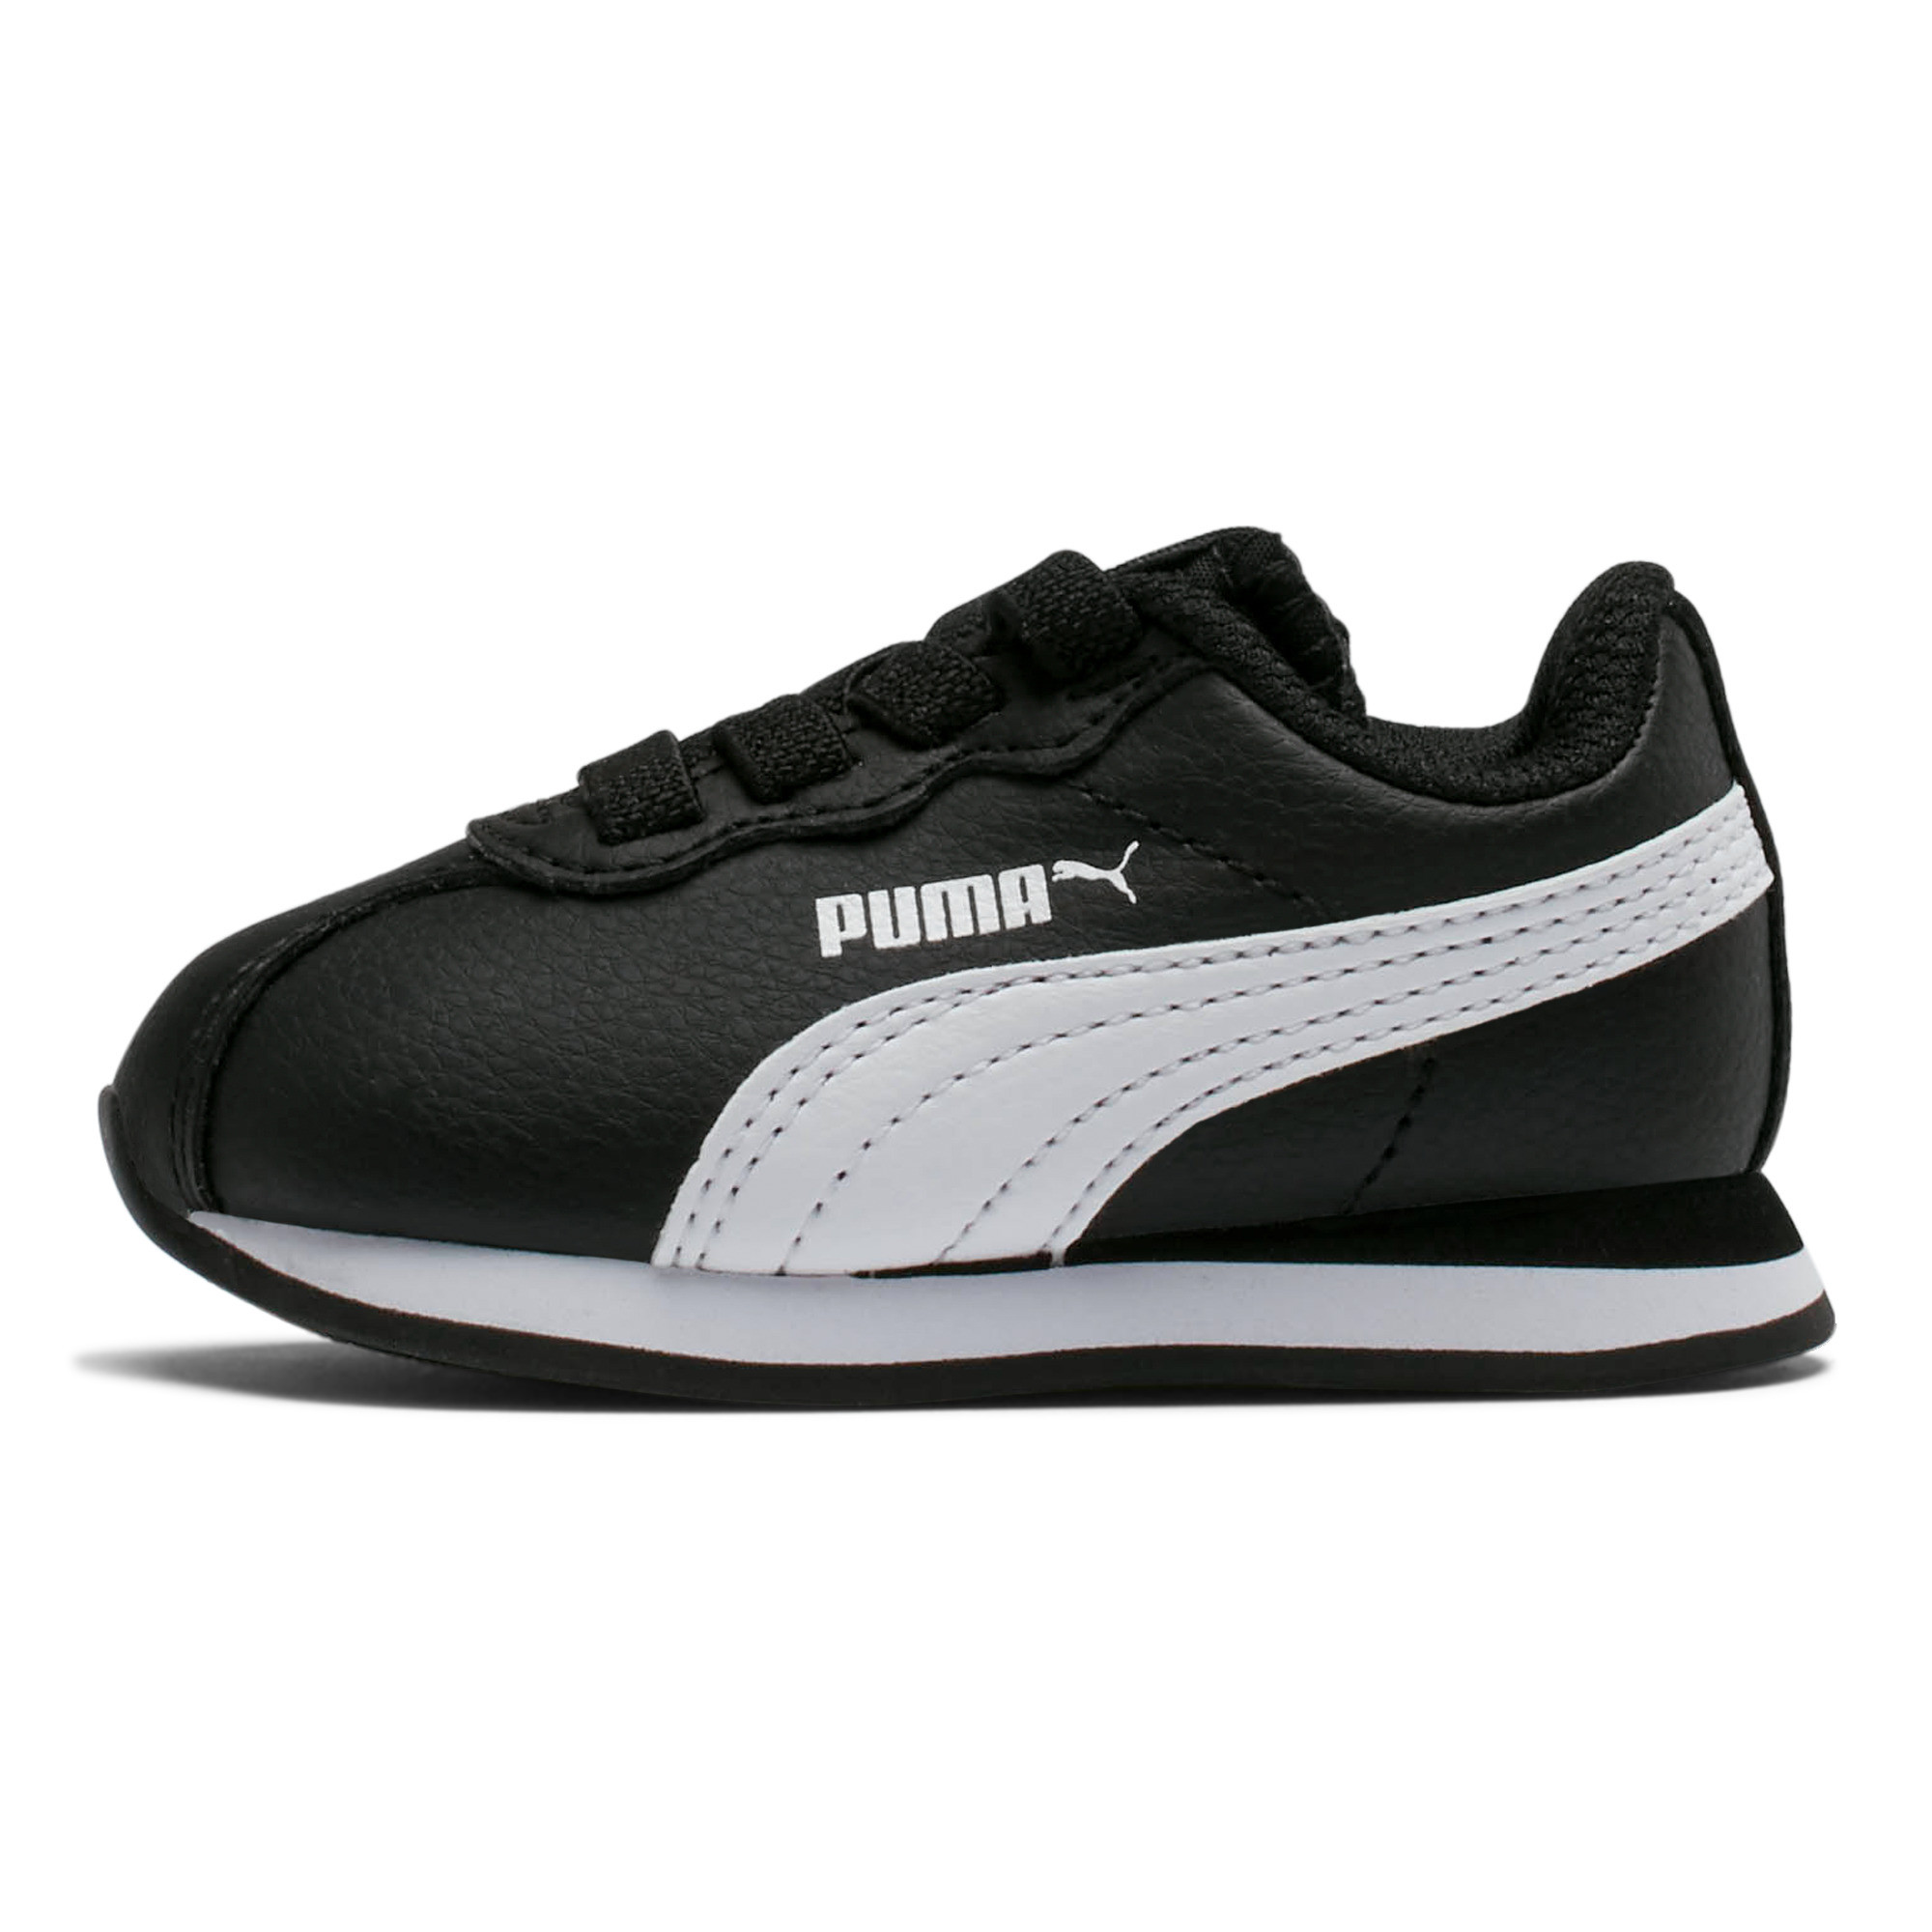 PUMA-Turin-II-AC-Toddler-Shoes-Kids-Shoe-Kids thumbnail 10